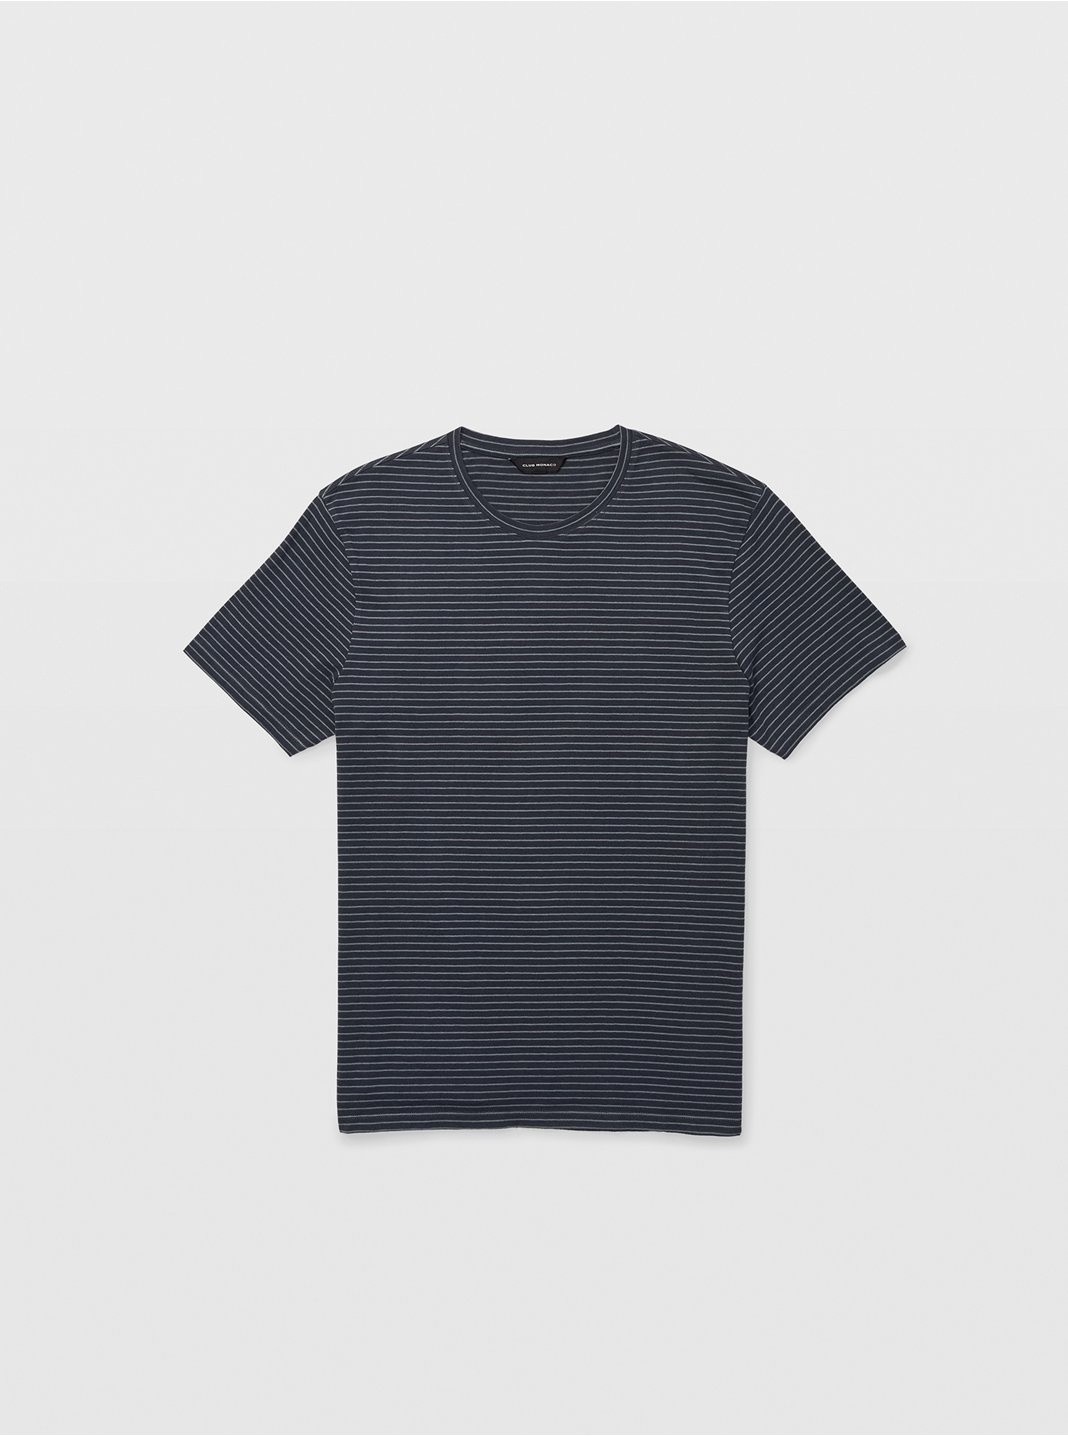 Narrow Stripe Tee